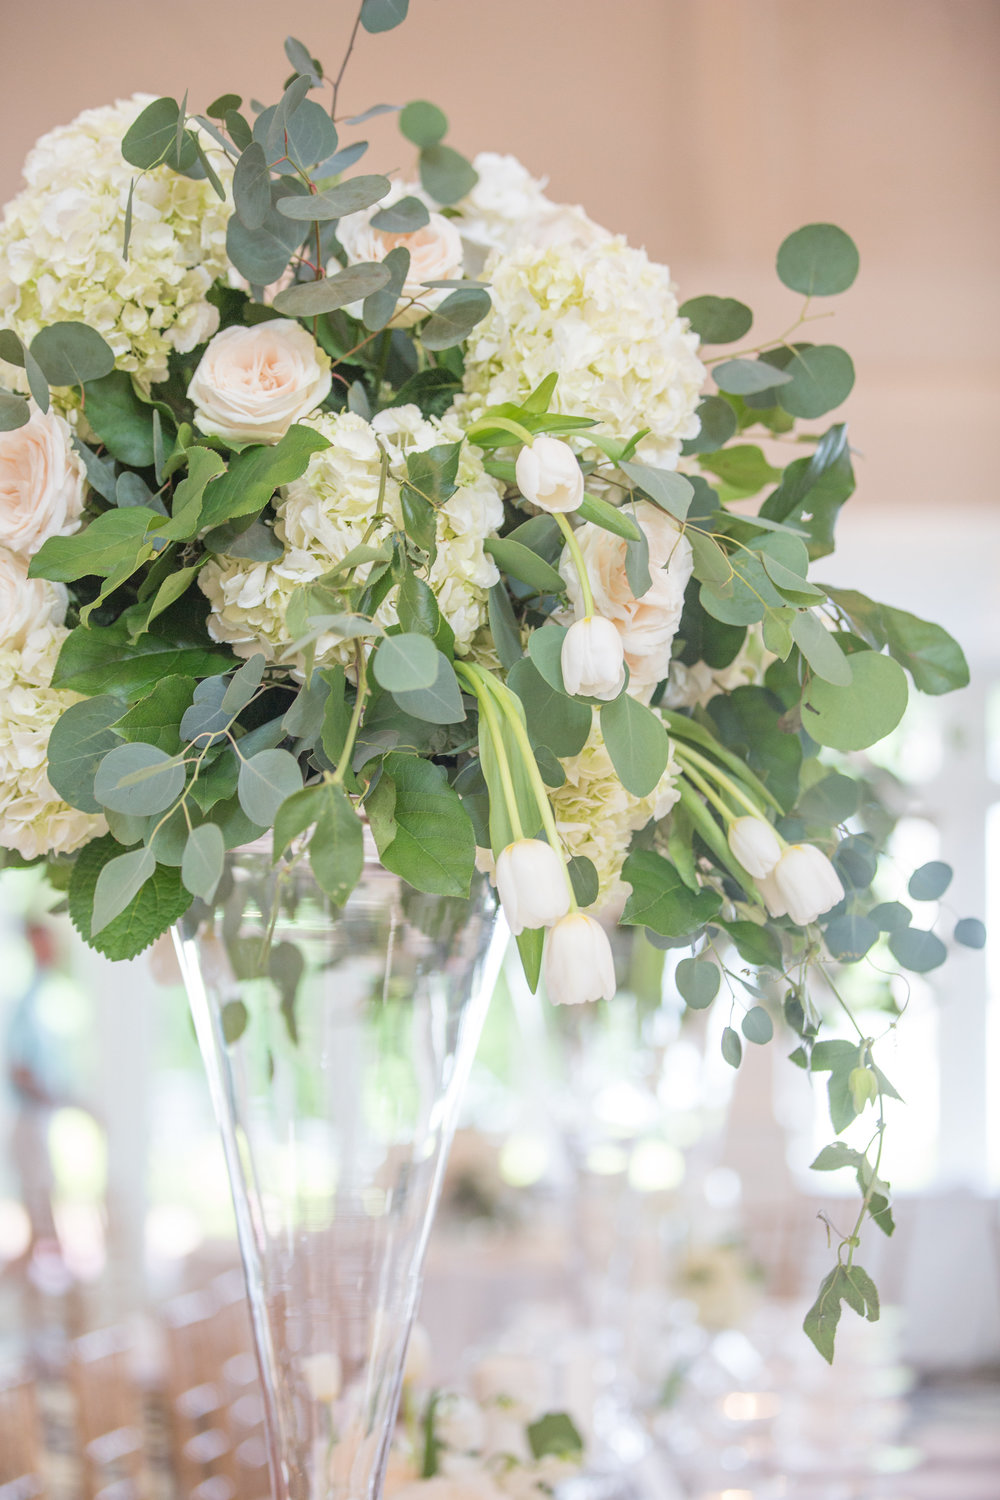 Charlotte North Carolina Wedding, Trump National Golf Course Wedding, Lakeside wedding, Blush Ivory and Greenery Wedding Design, The Graceful Host, Classic Wedding, Wedding Centerpiece, Wedding Flowers, Tall Wedding Centerpiece, Wedding Table Number Names, Peony Wedding, Spring Wedding, All White Wedding